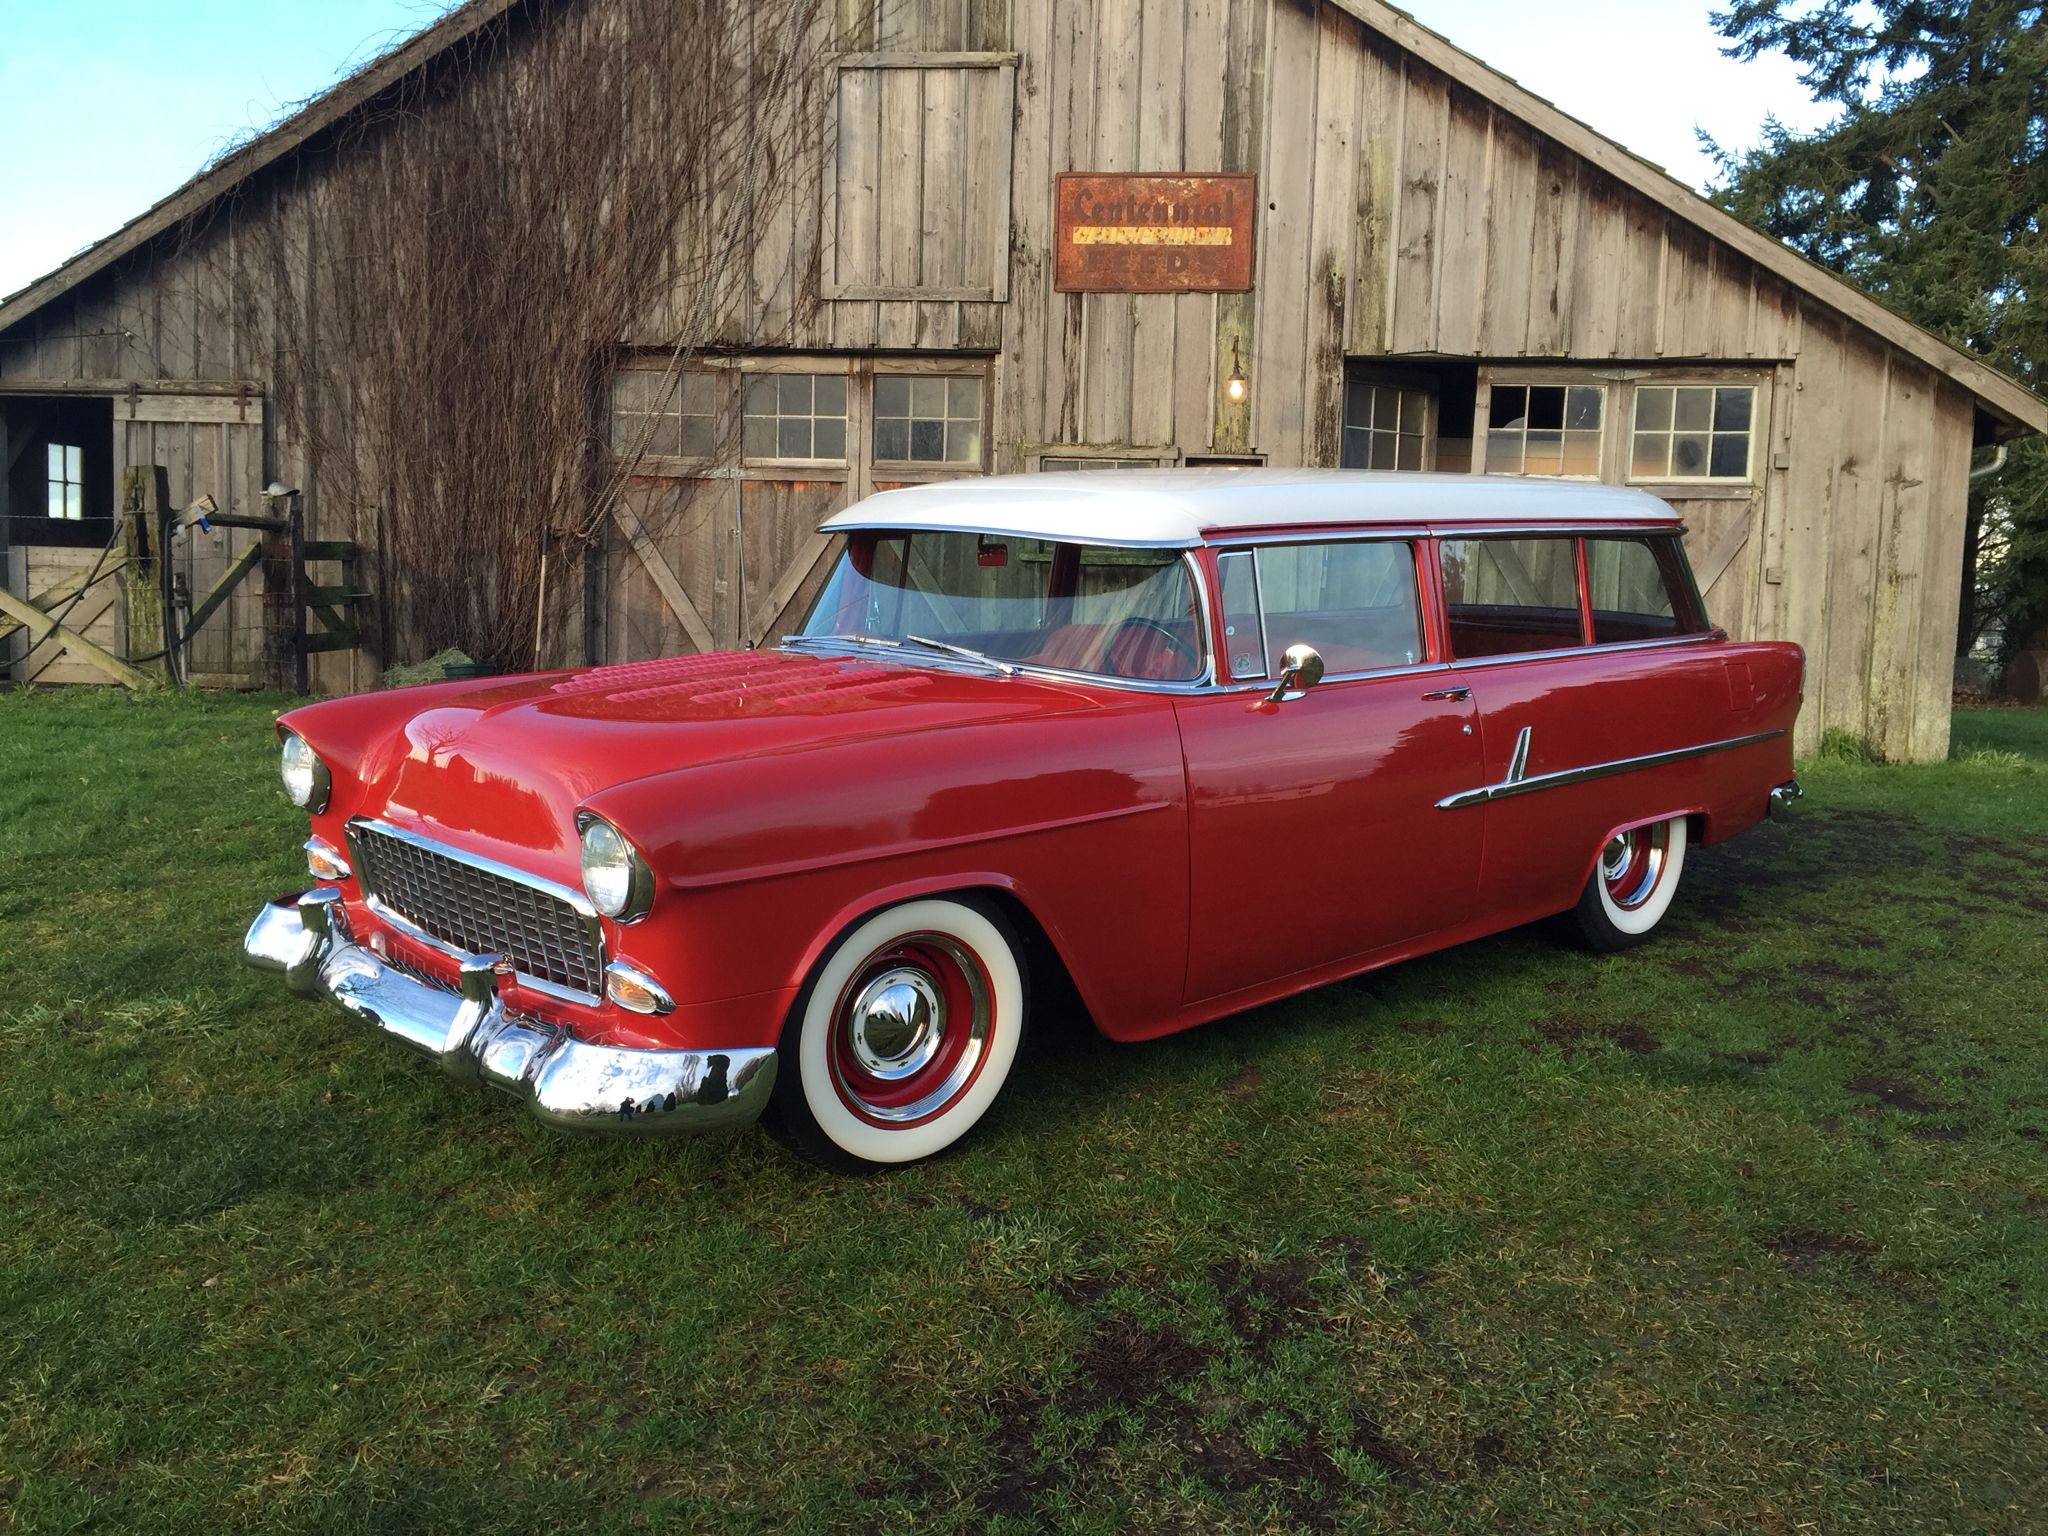 '55 Chevy Wagon 55 chevy, 1955 chevy, Classic cars